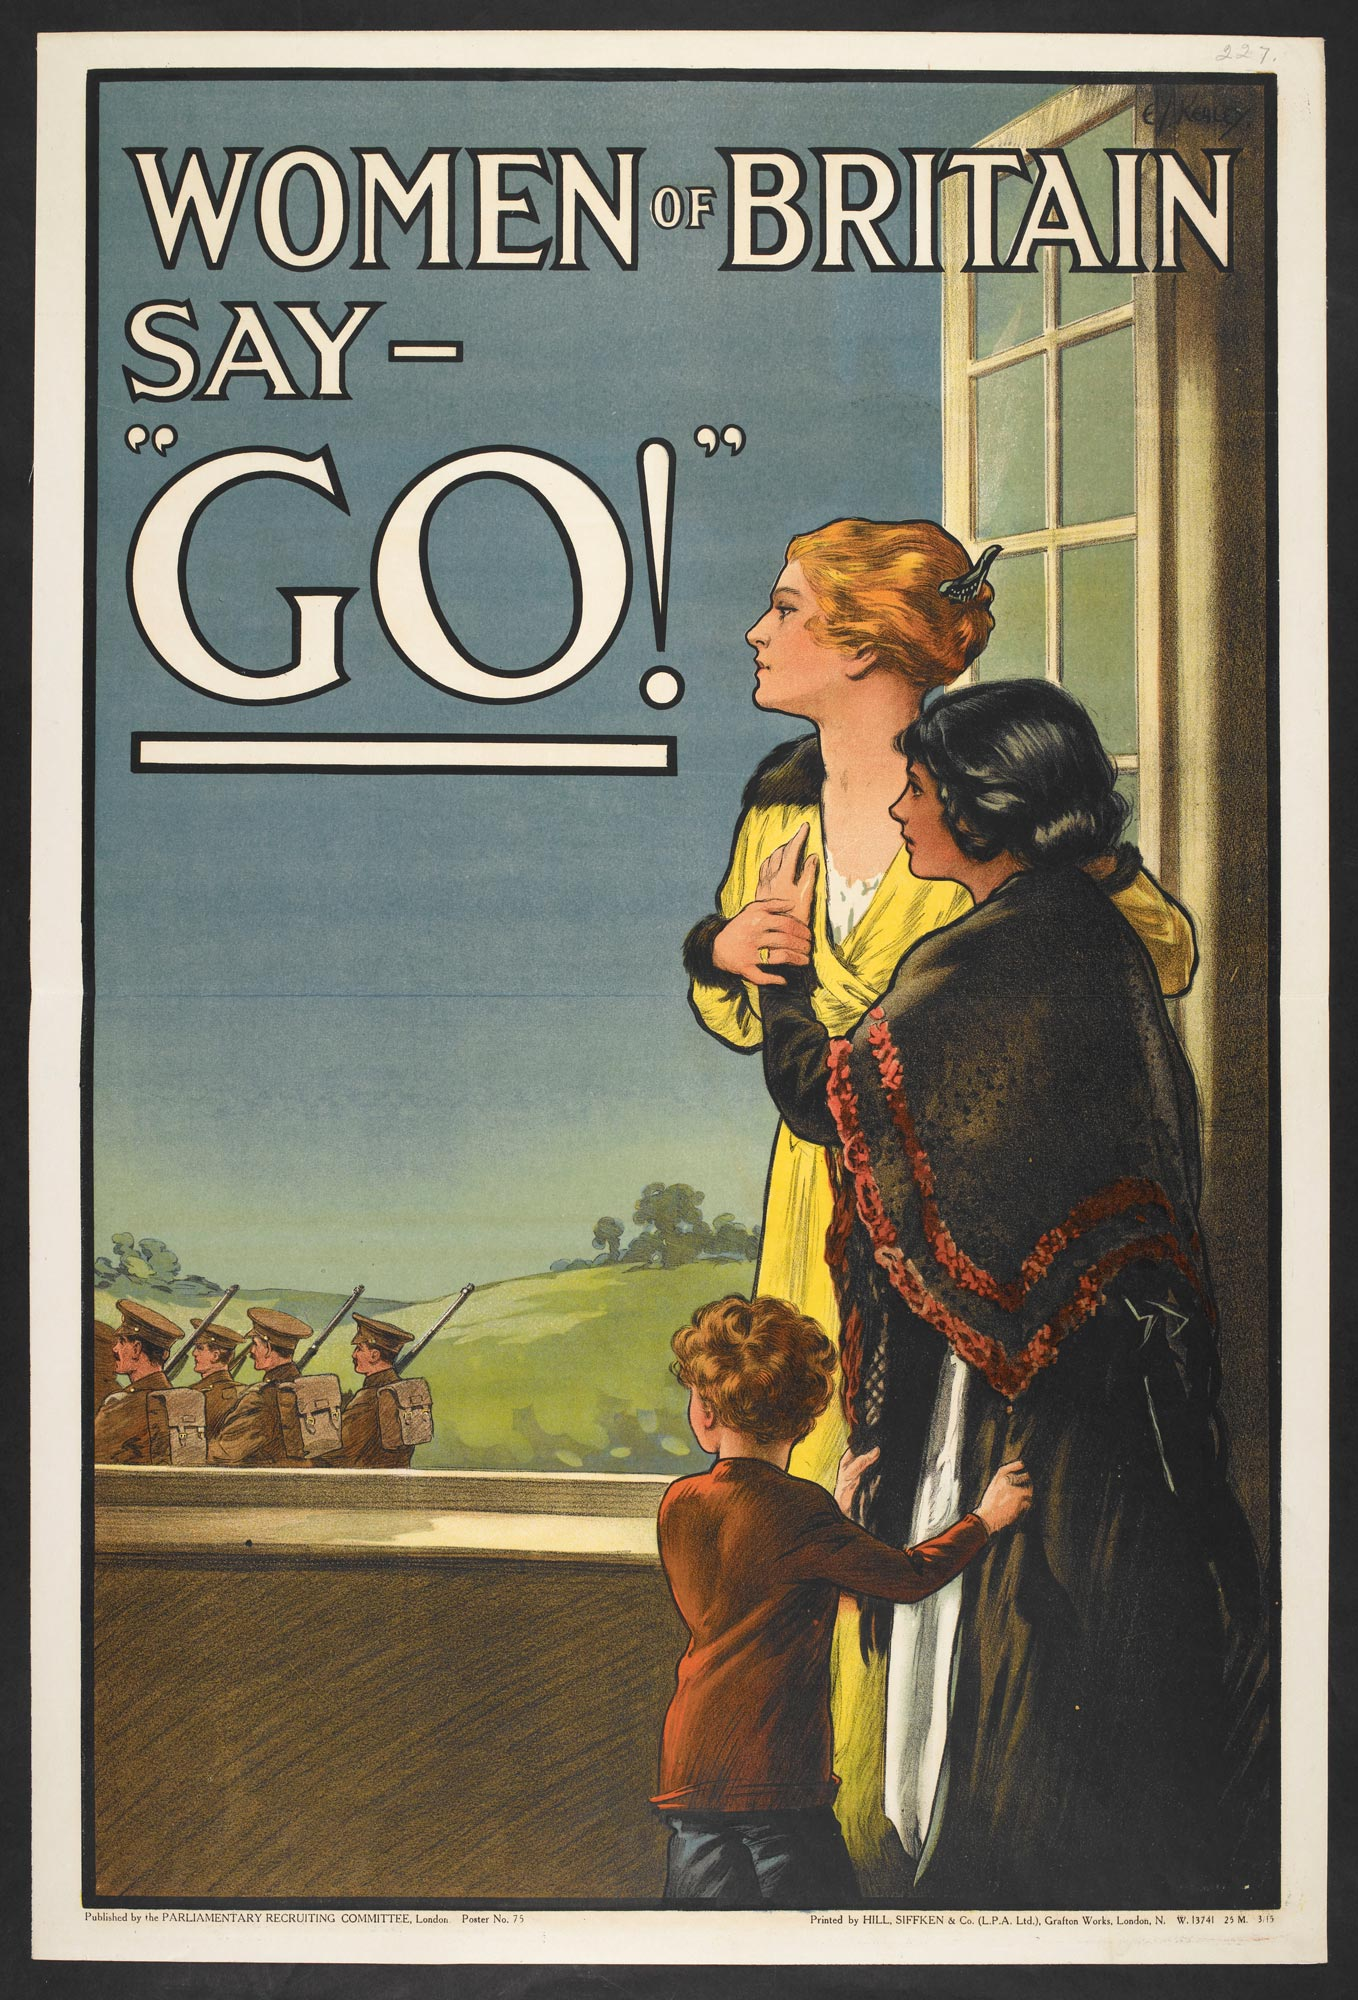 "'Women of Britain say - ""GO!""', a propaganda poster appealing to Britain's women to ensure their men enlist."